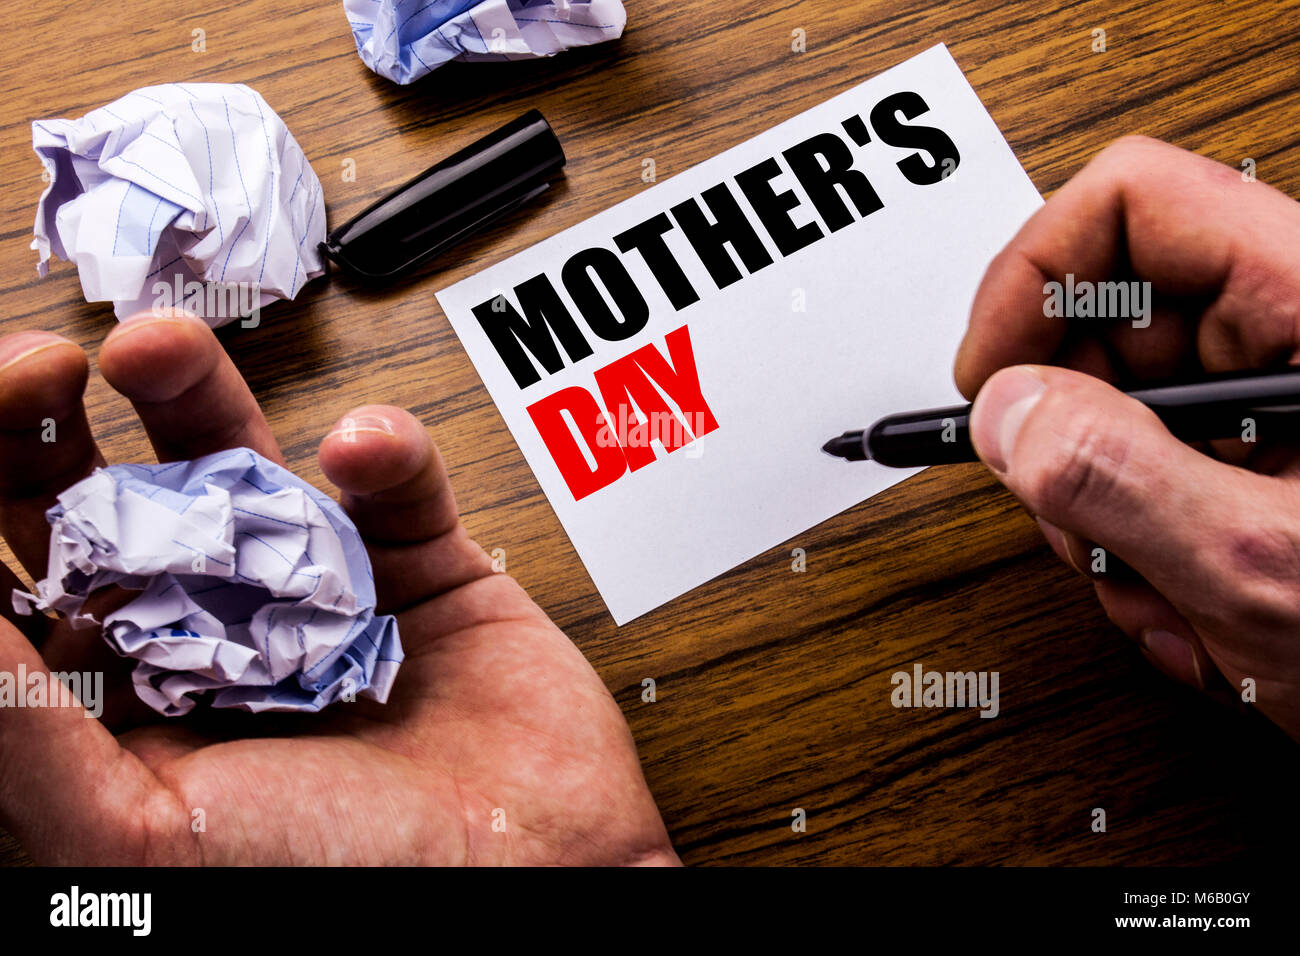 Handwriting text mother day concept for mom greetings celebration handwriting text mother day concept for mom greetings celebration written on notebook note paper on wooden background with folded paper meaning thi m4hsunfo